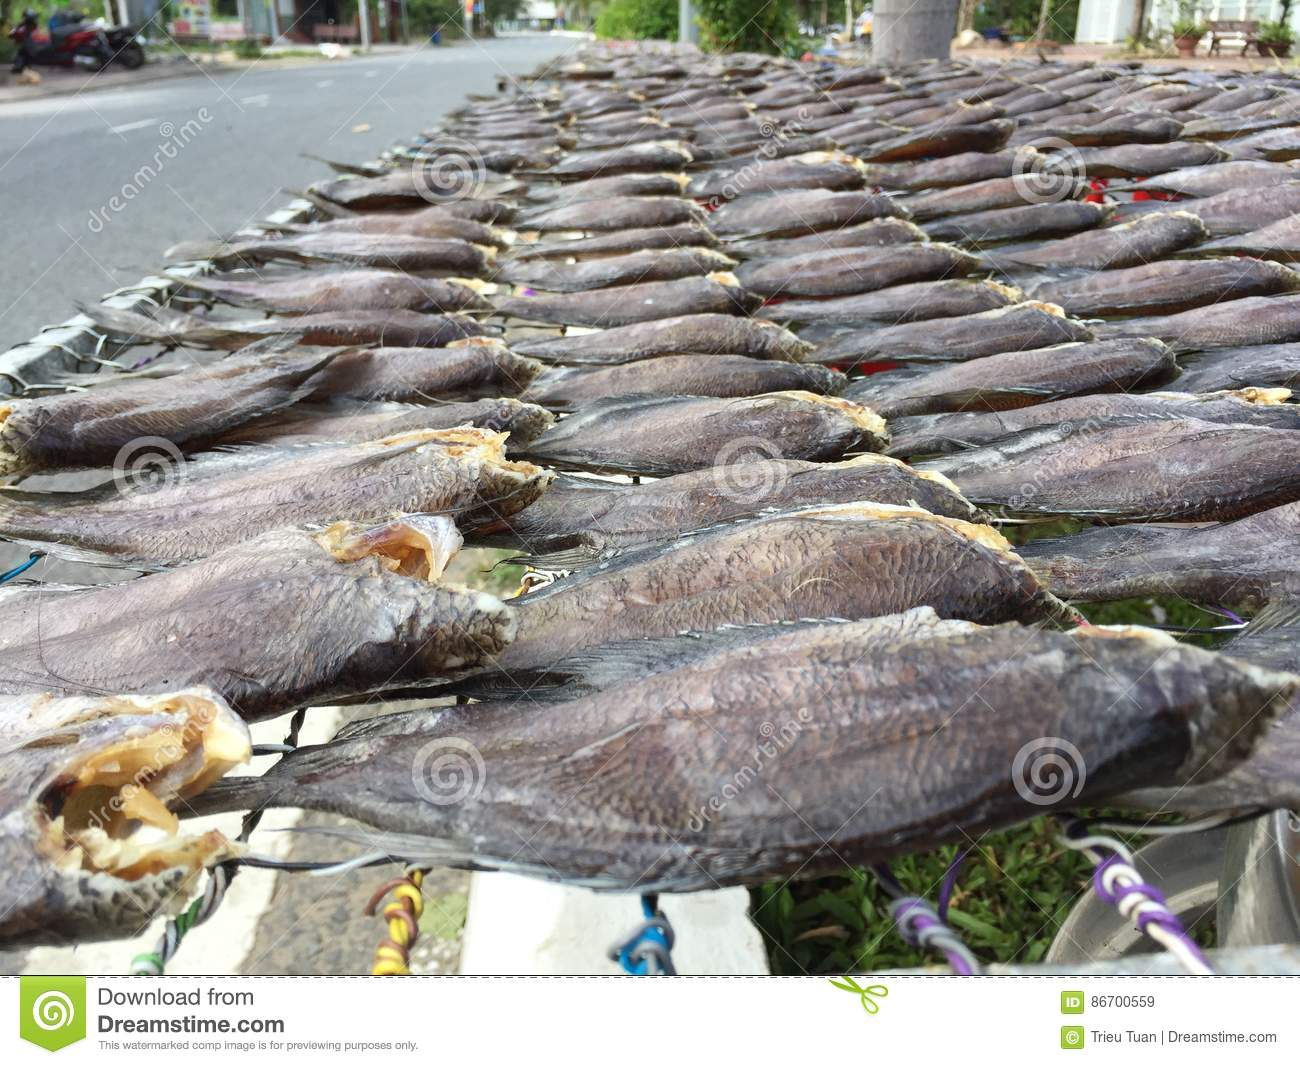 The Vietnamese cuisine: seafood - dried fish